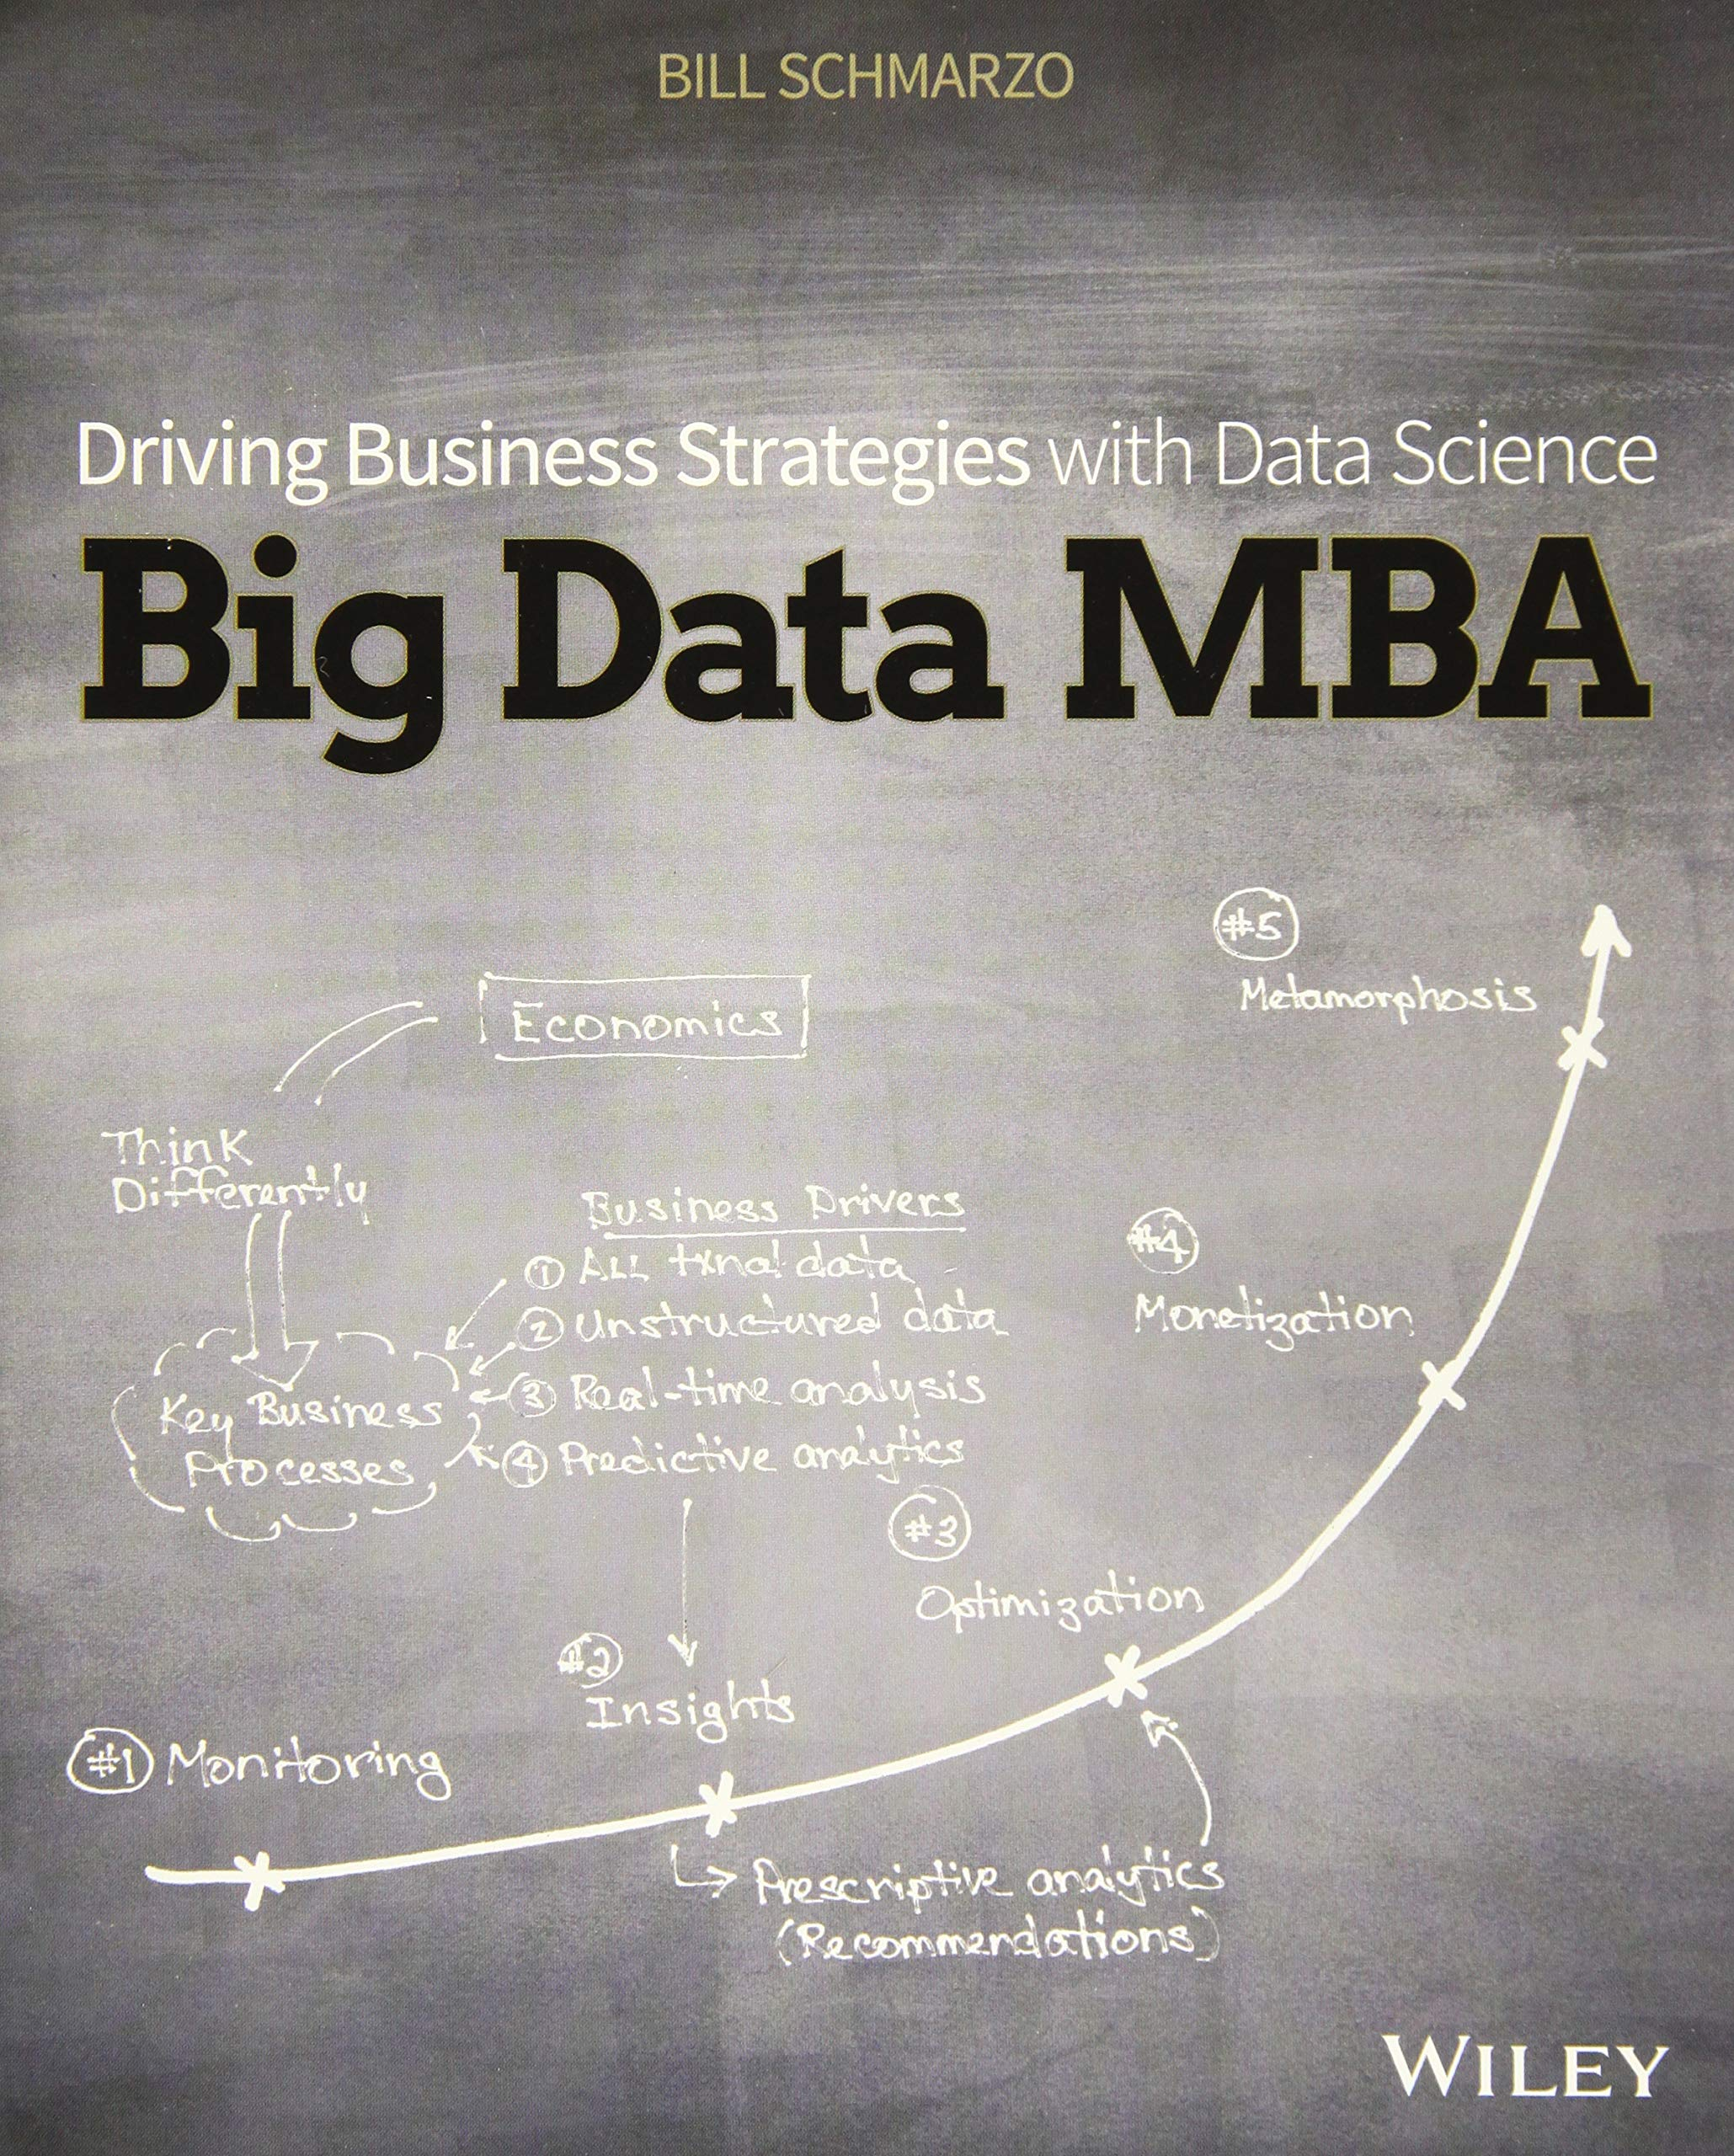 Image OfBig Data MBA: Driving Business Strategies With Data Science